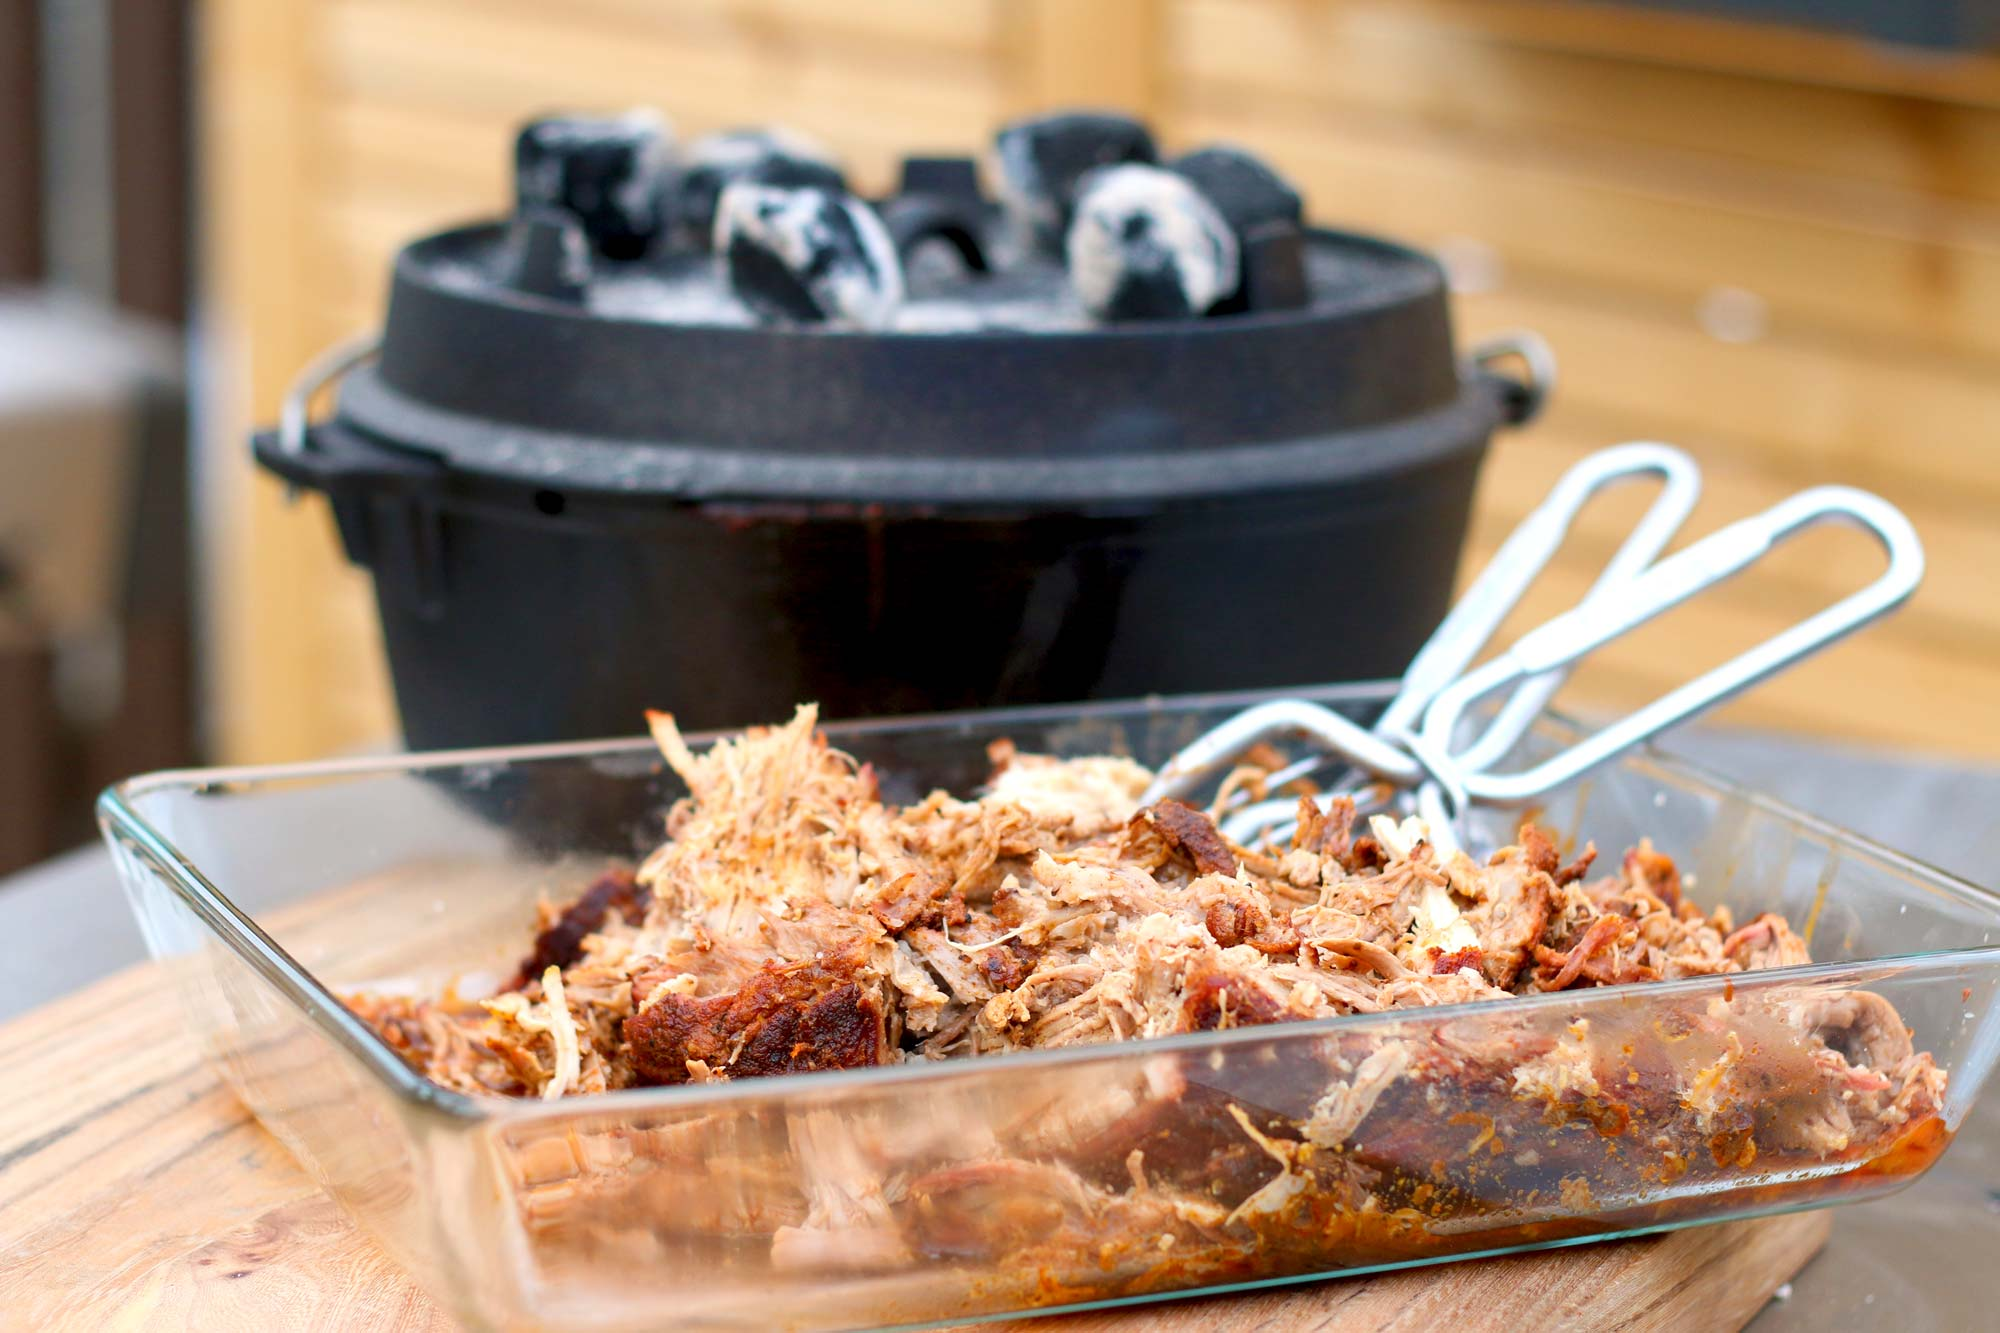 Pulled Pork Gasgrill Texas : Pulled pork aus dem dutch oven highspeed pp in h